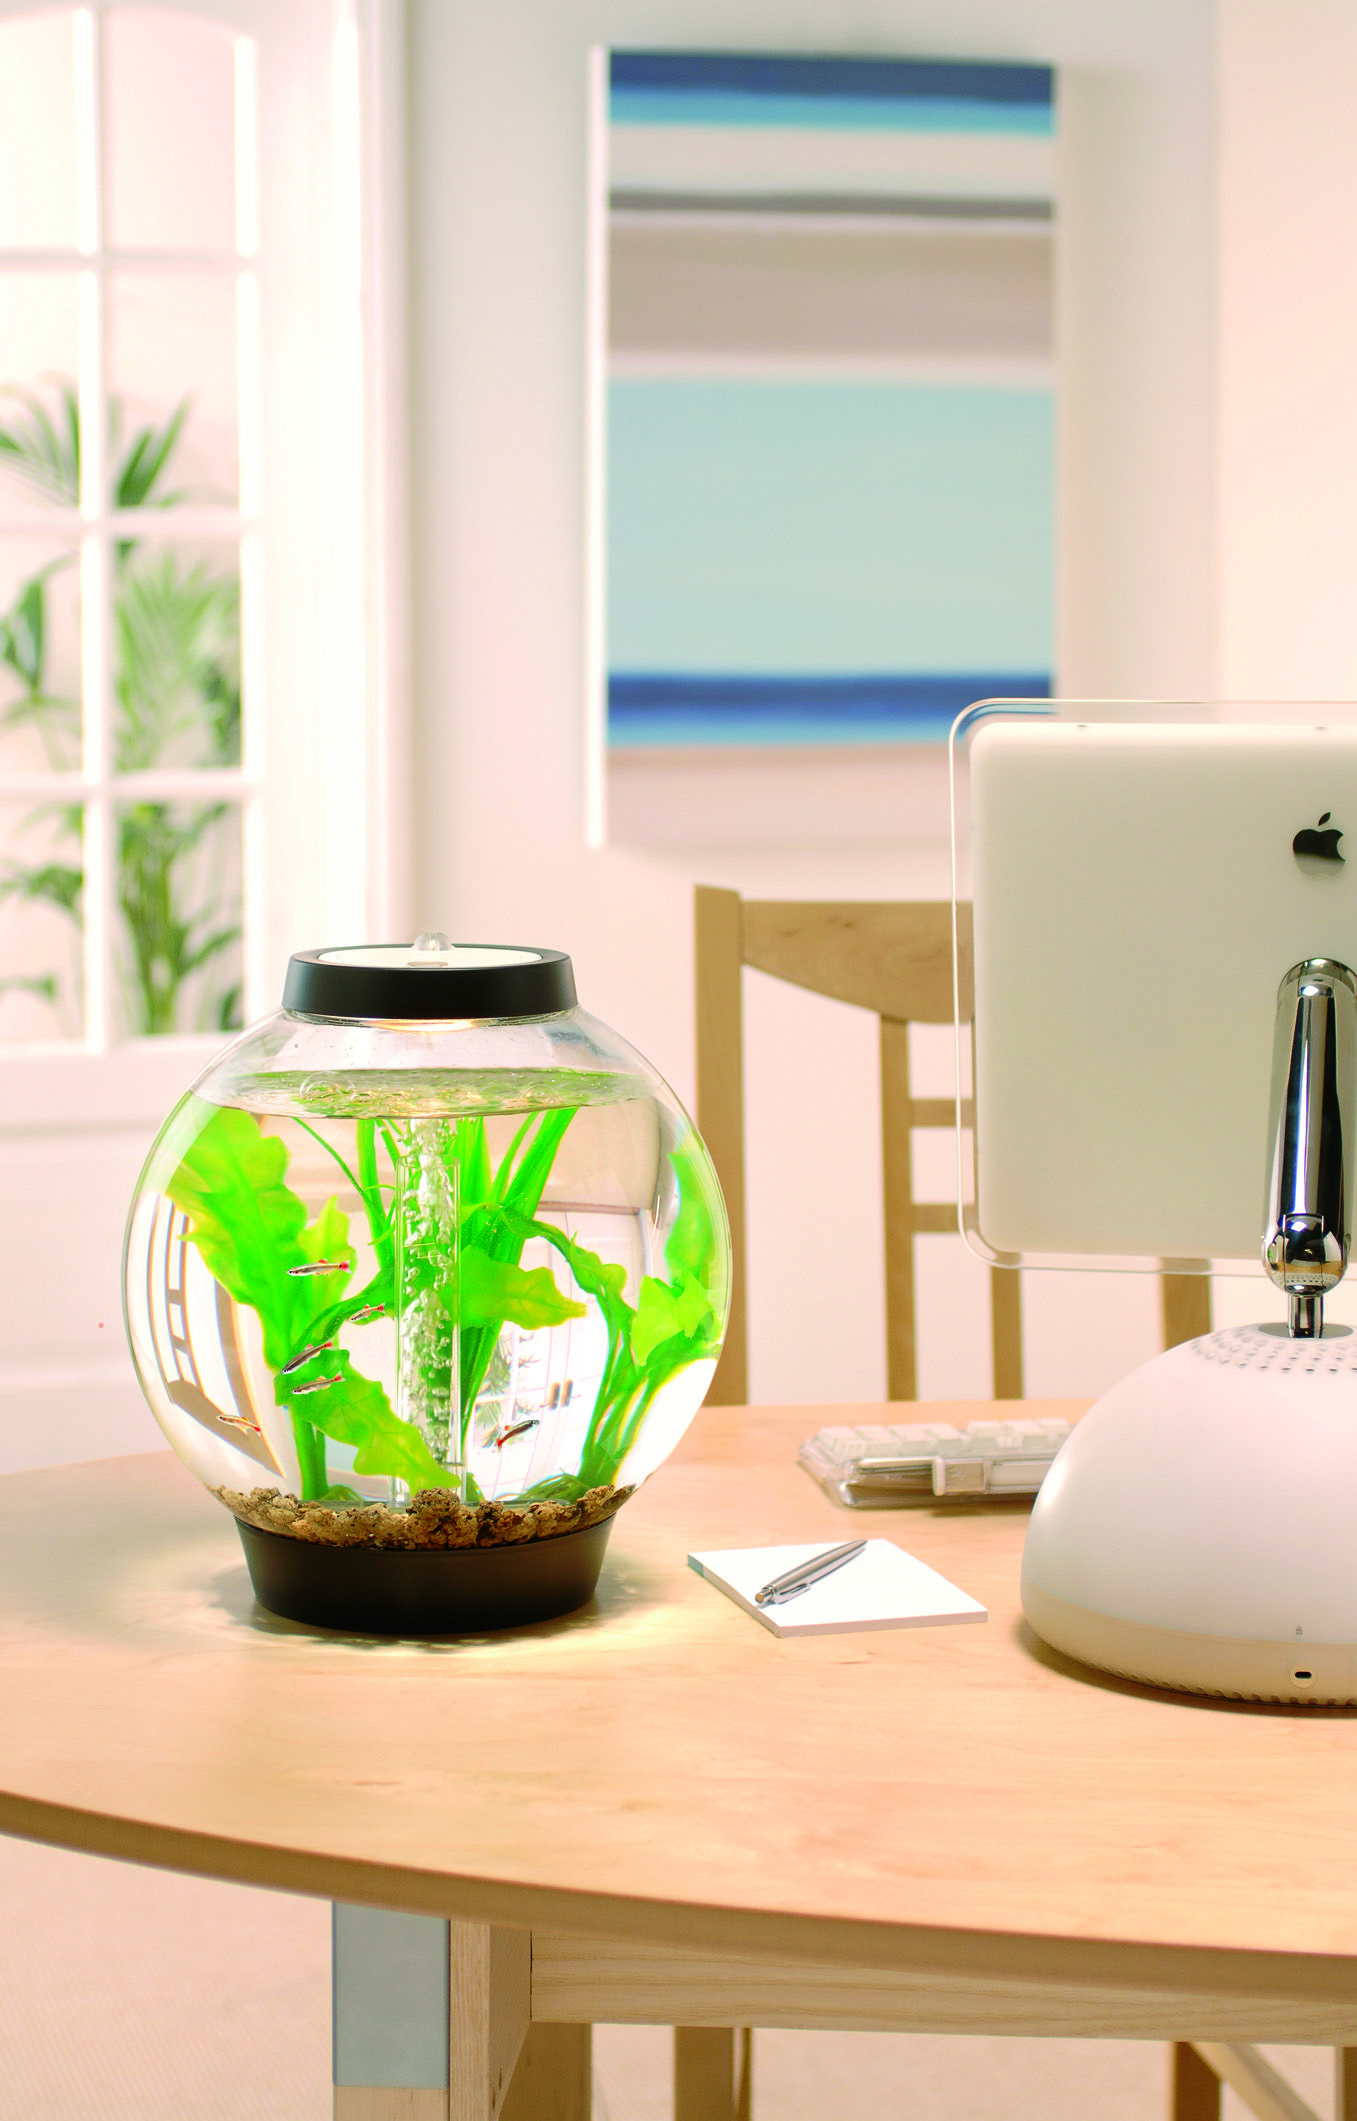 With a capacity of 15L the small and perfectly formed baby